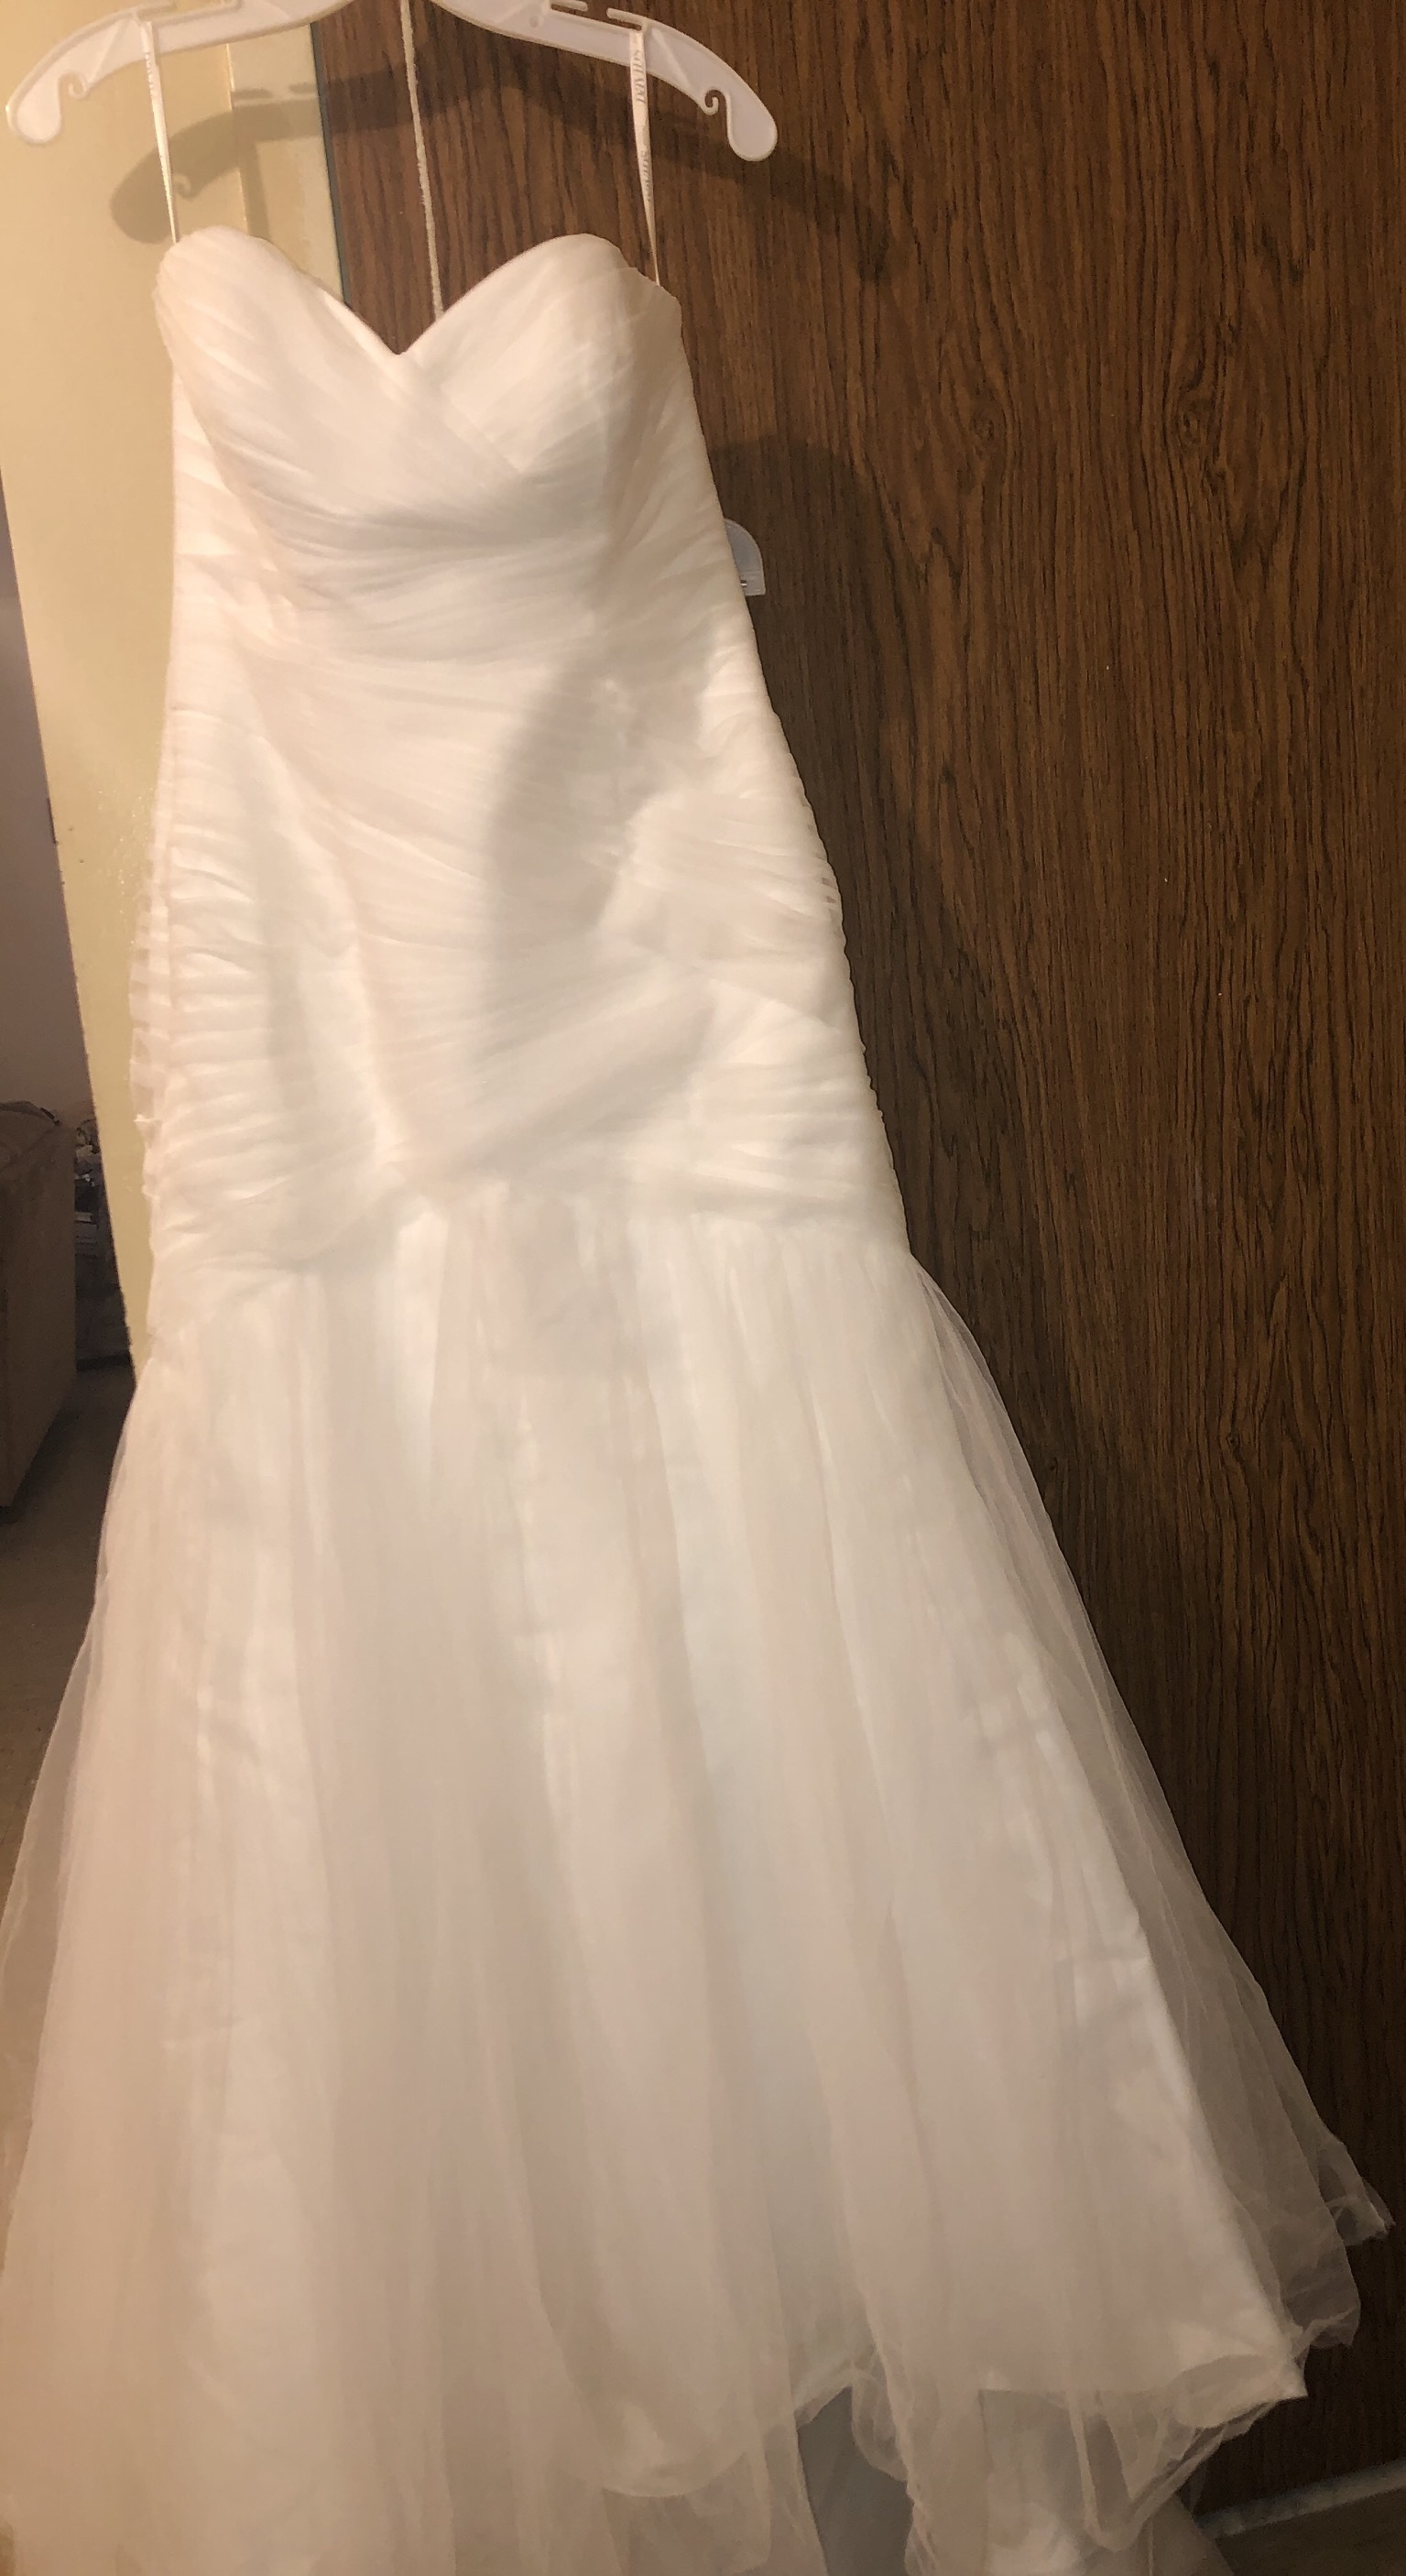 David bridal - WG3791 size 12 - $325 - (35% OFF)